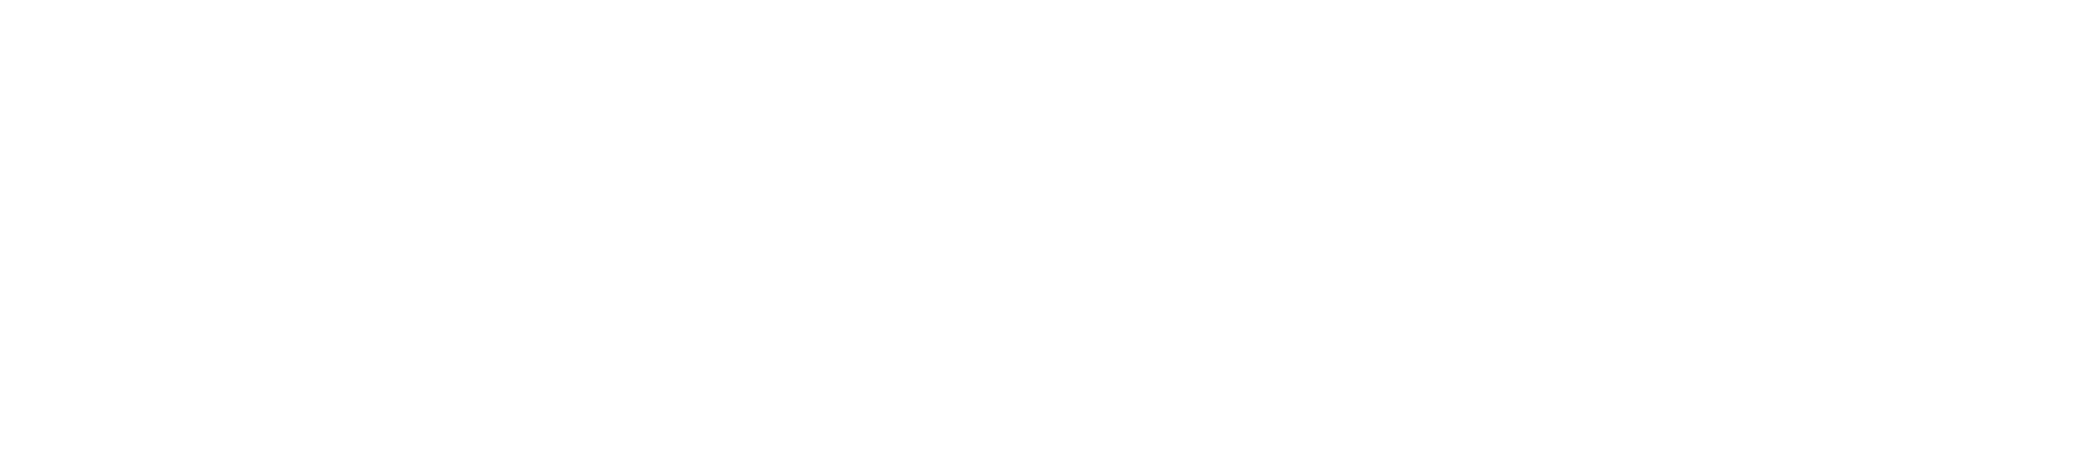 Yellow Buck Inc.